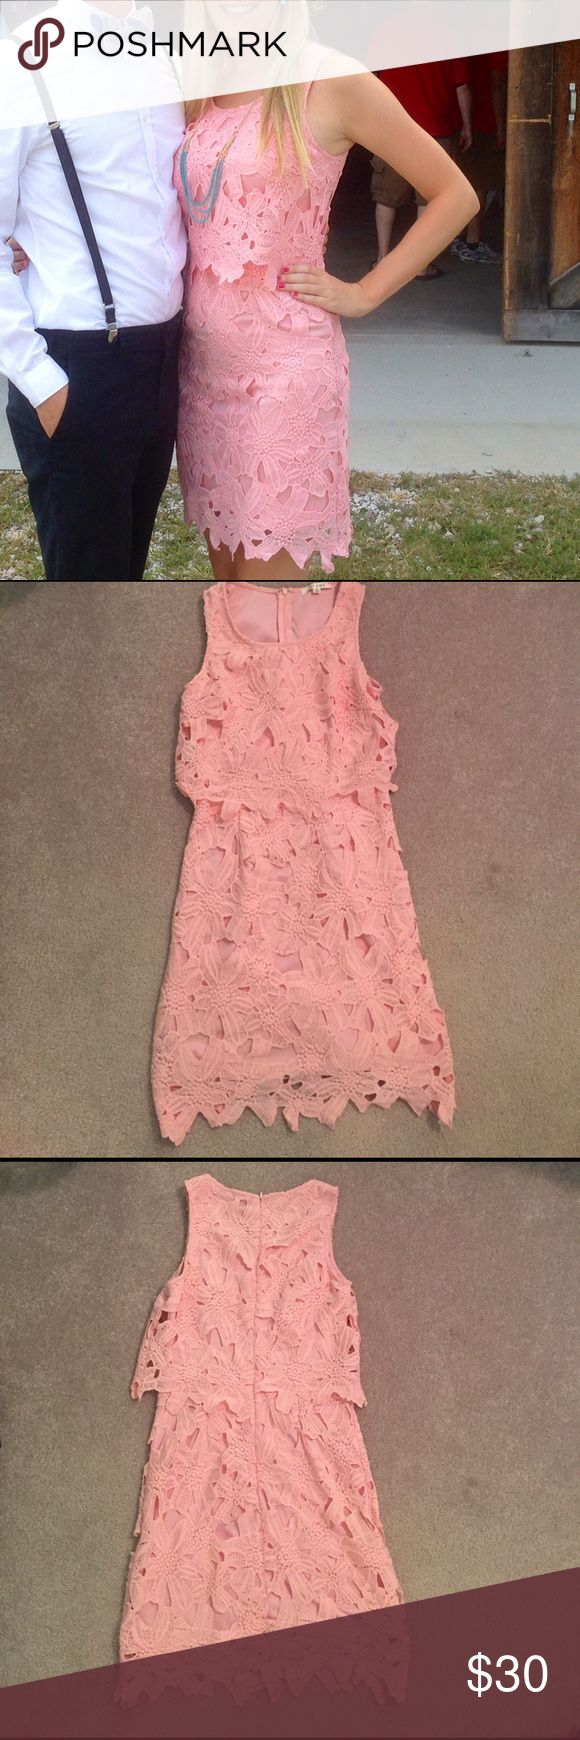 Francesca's peach lace dress Small peach dress from francesca's. 100% polyester with polyester lining. Francesca's Collections Dresses Mini